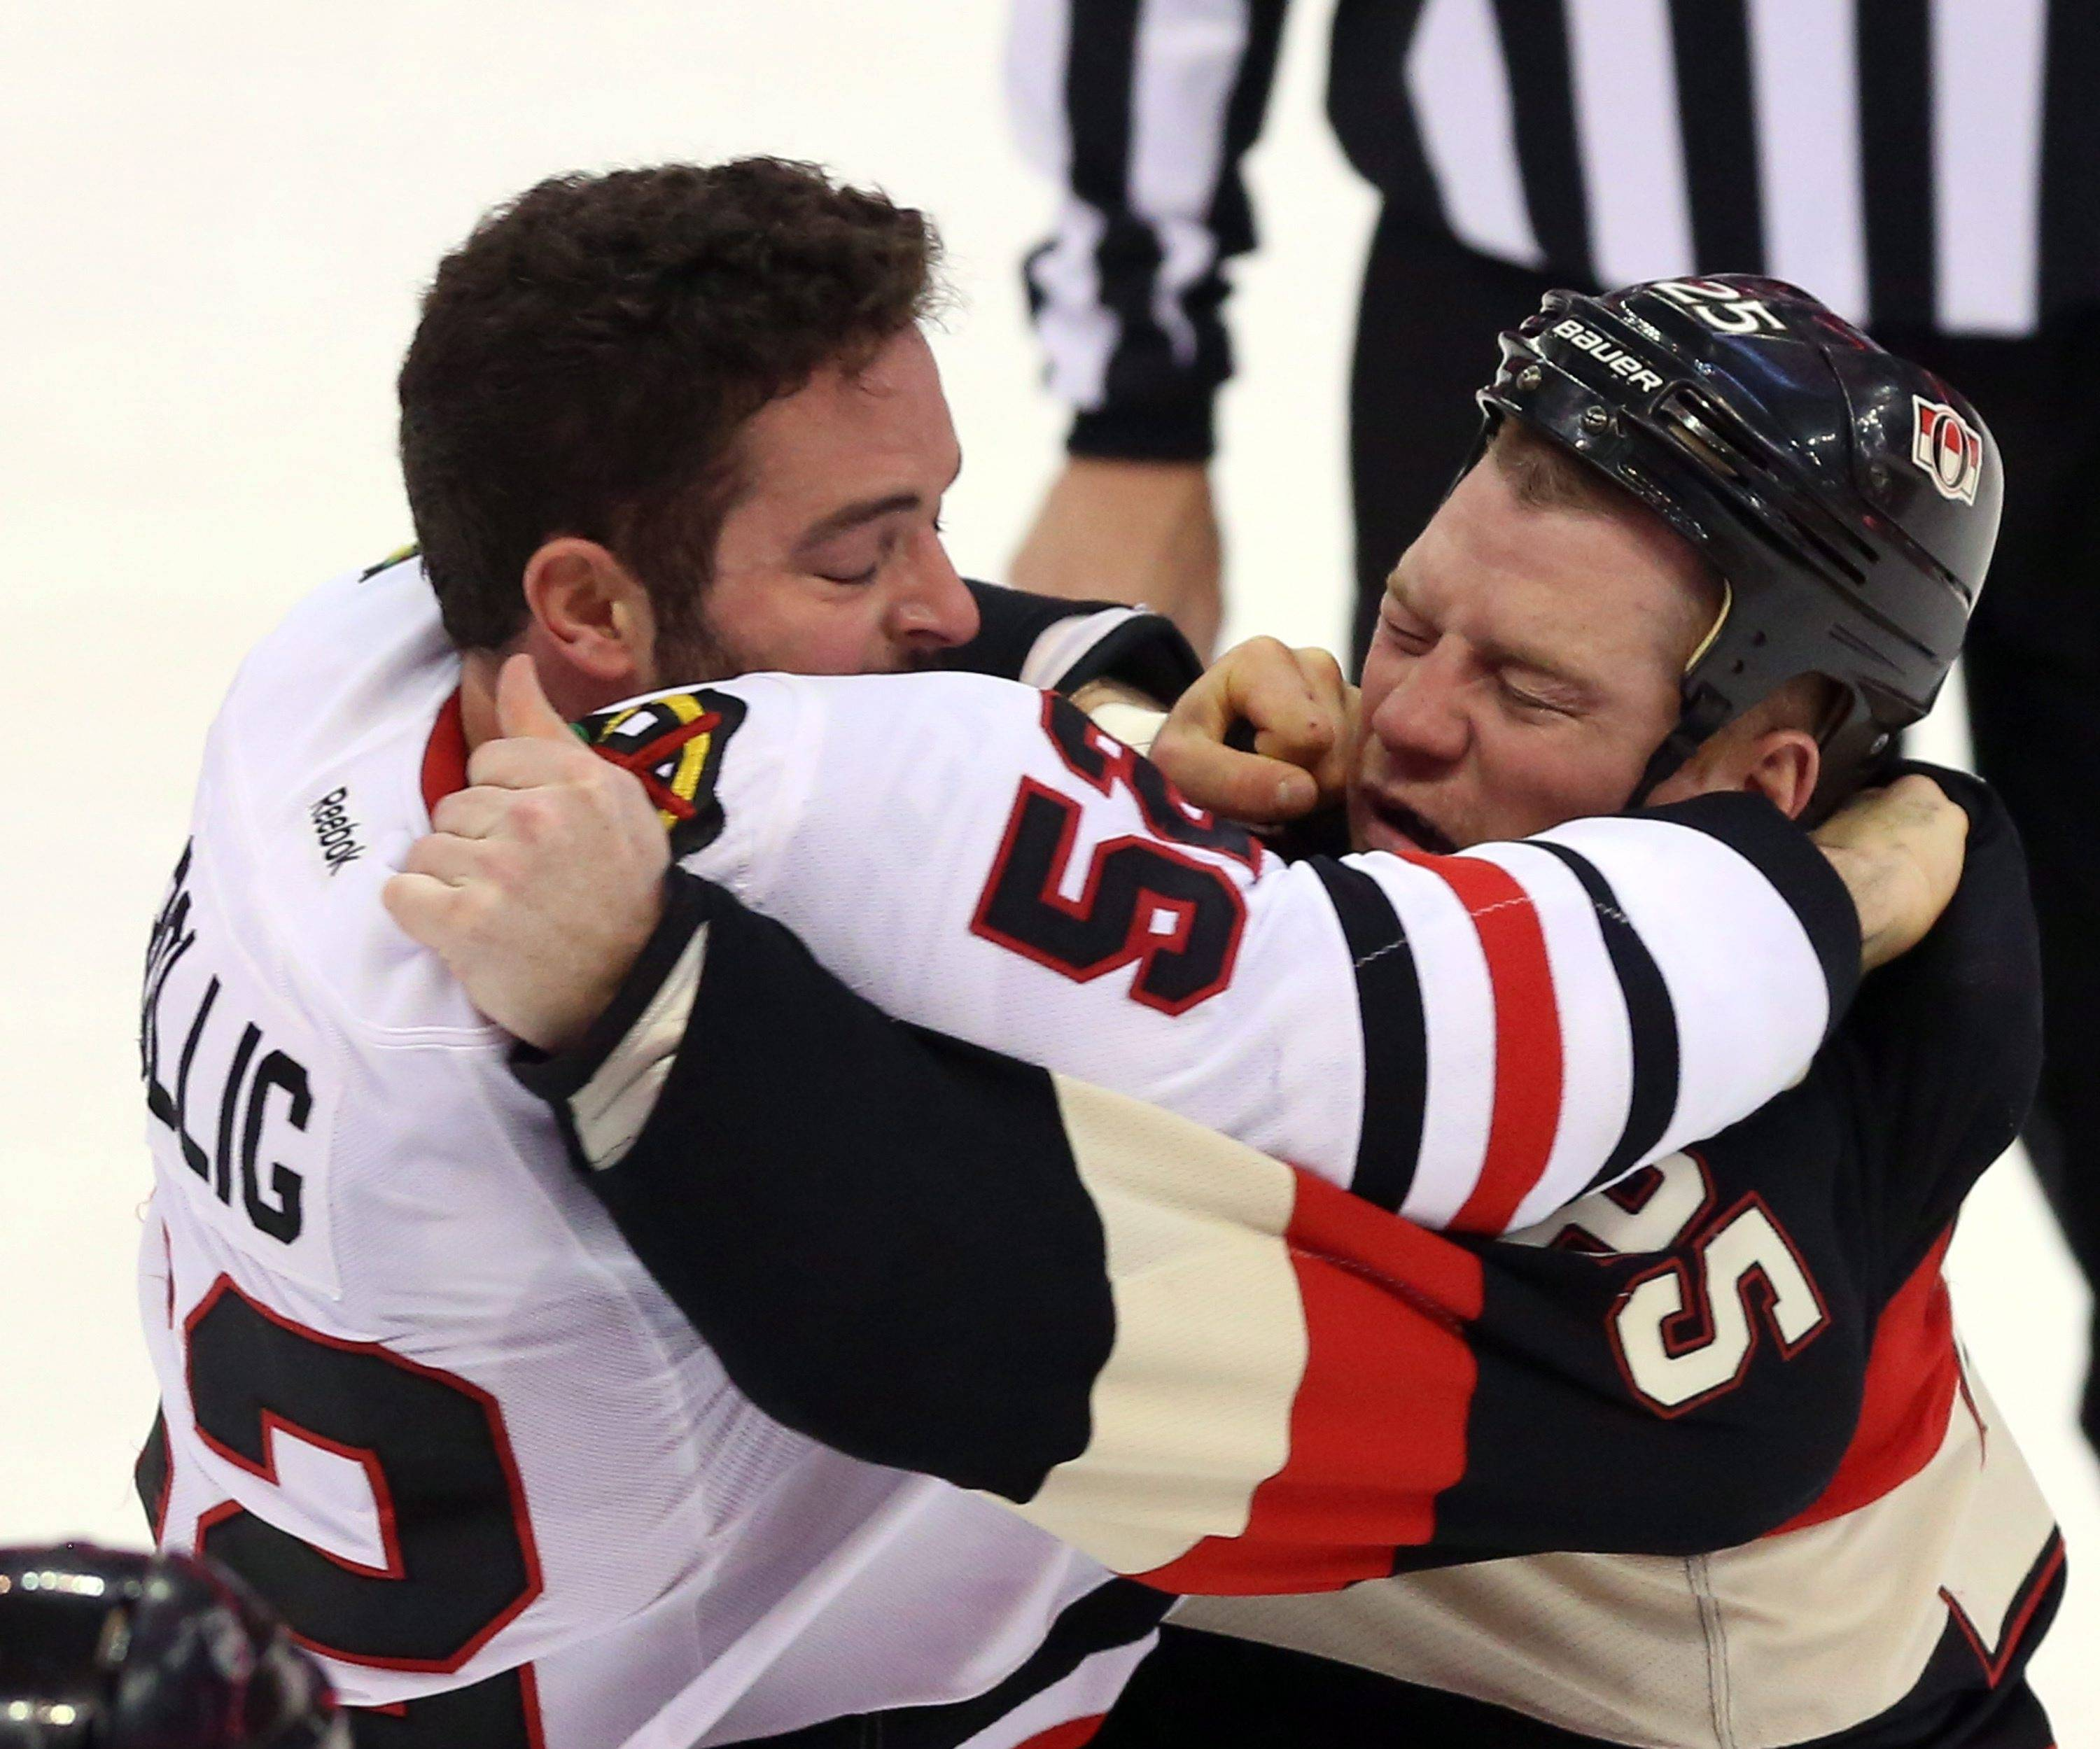 The Blackhawks' Brandon Bollig (52) fights Ottawa Senators' Chris Neil (25) during first-period NHL hockey game action in Ottawa, Ontario, Friday, March 28, 2014.